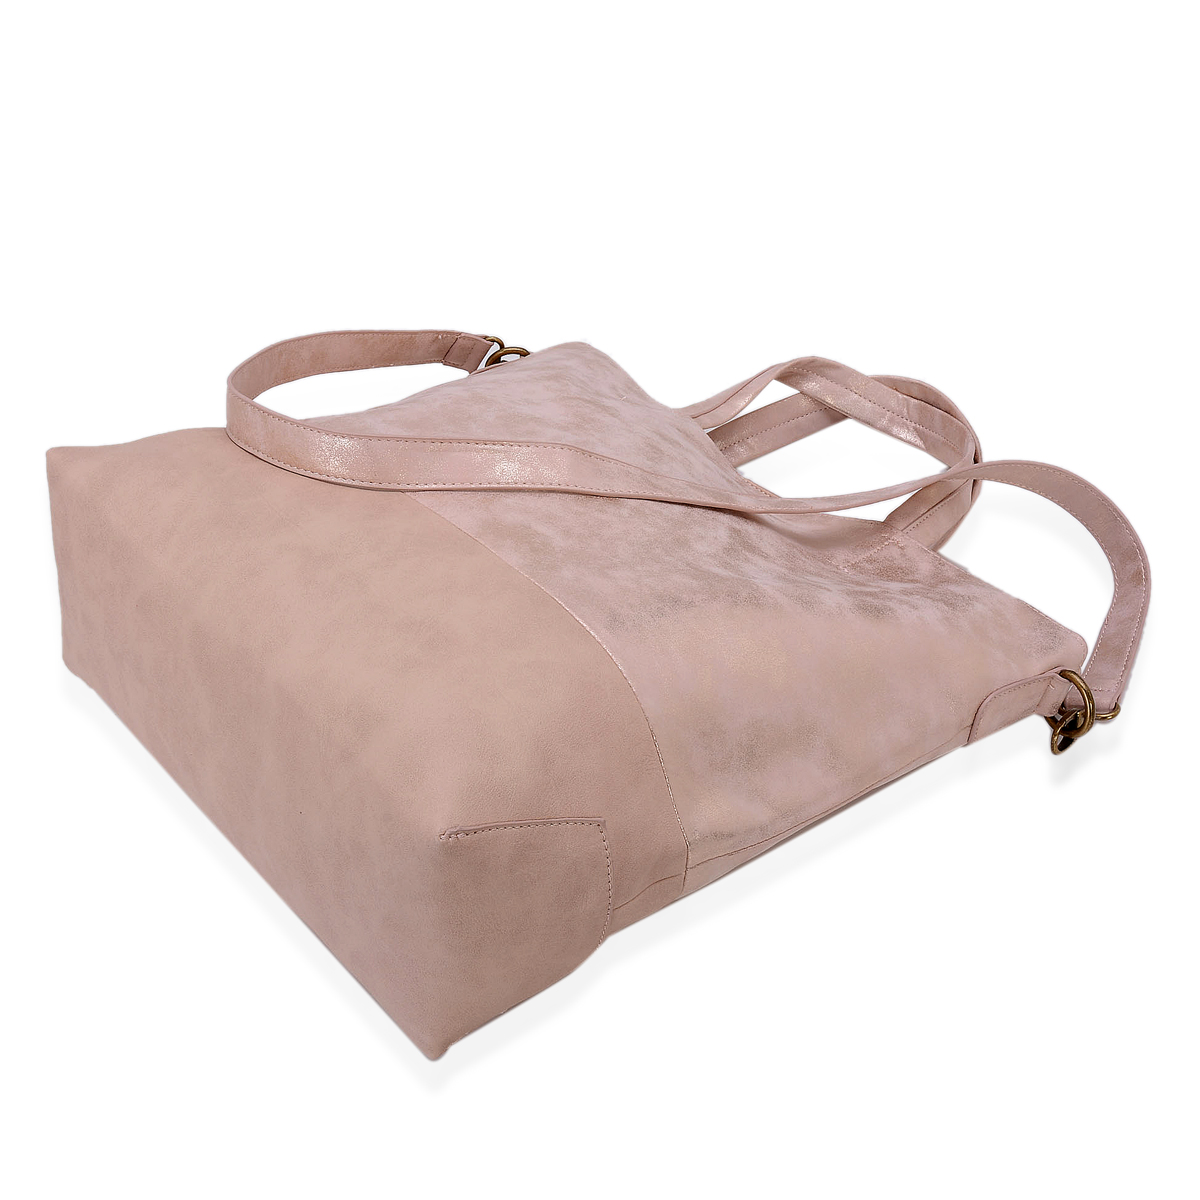 J Francis - Dusty Rose Faux Leather Tote Bag (13x5x15 in)